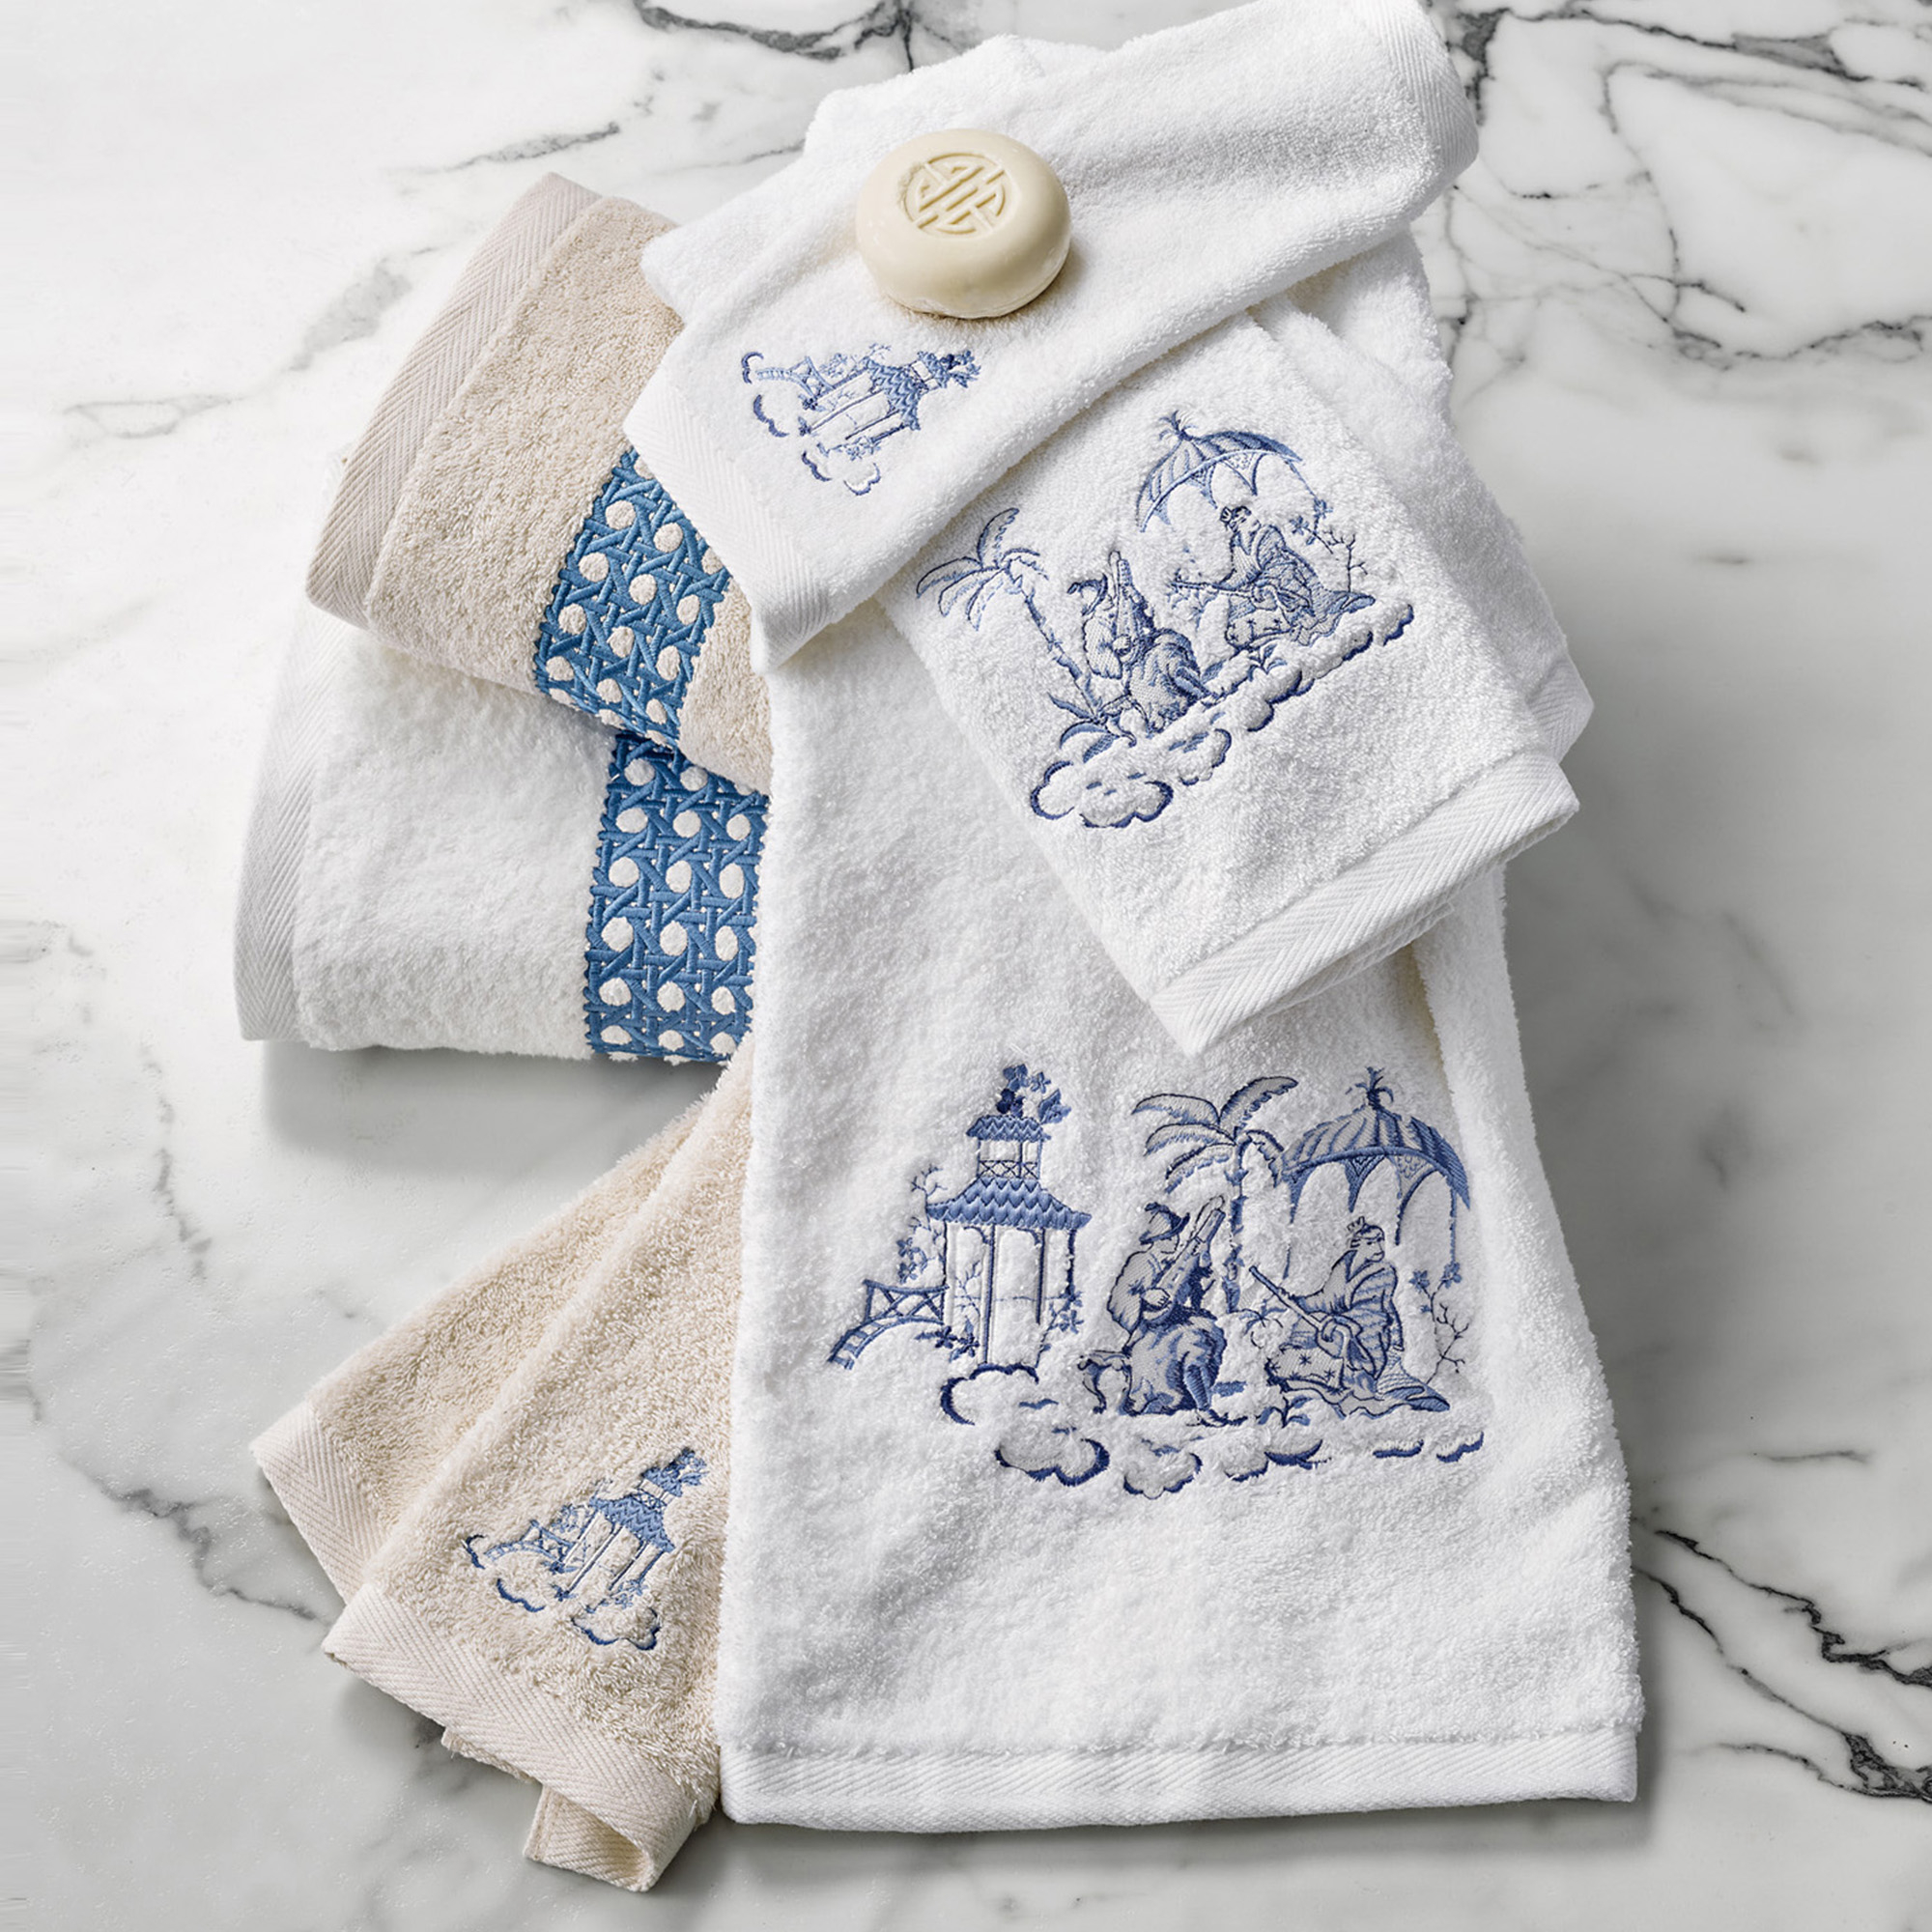 Cane Embroidered Ivory Towels